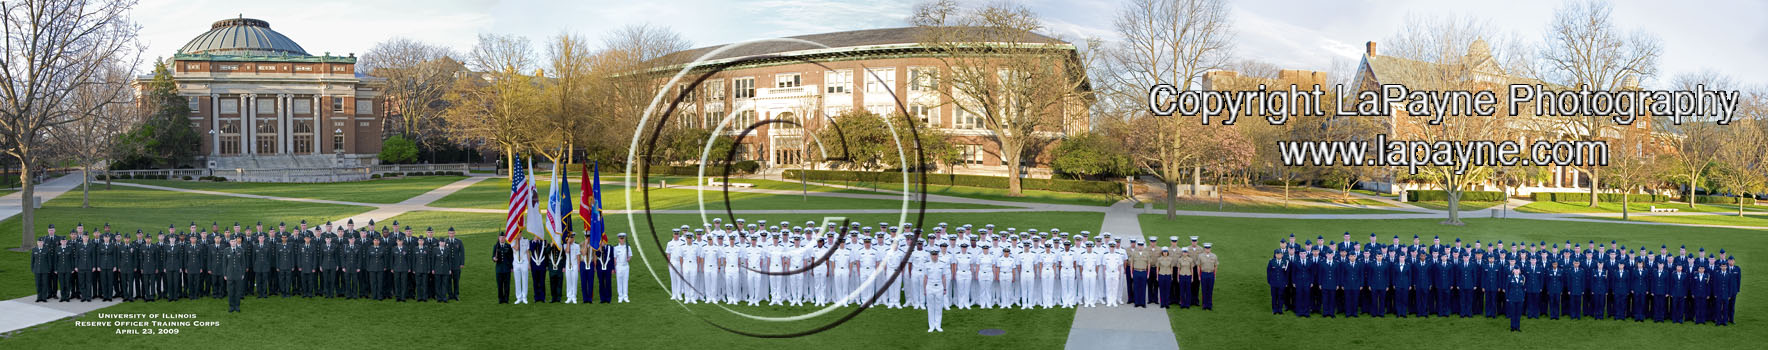 Illinois ROTC 2009 Panorama